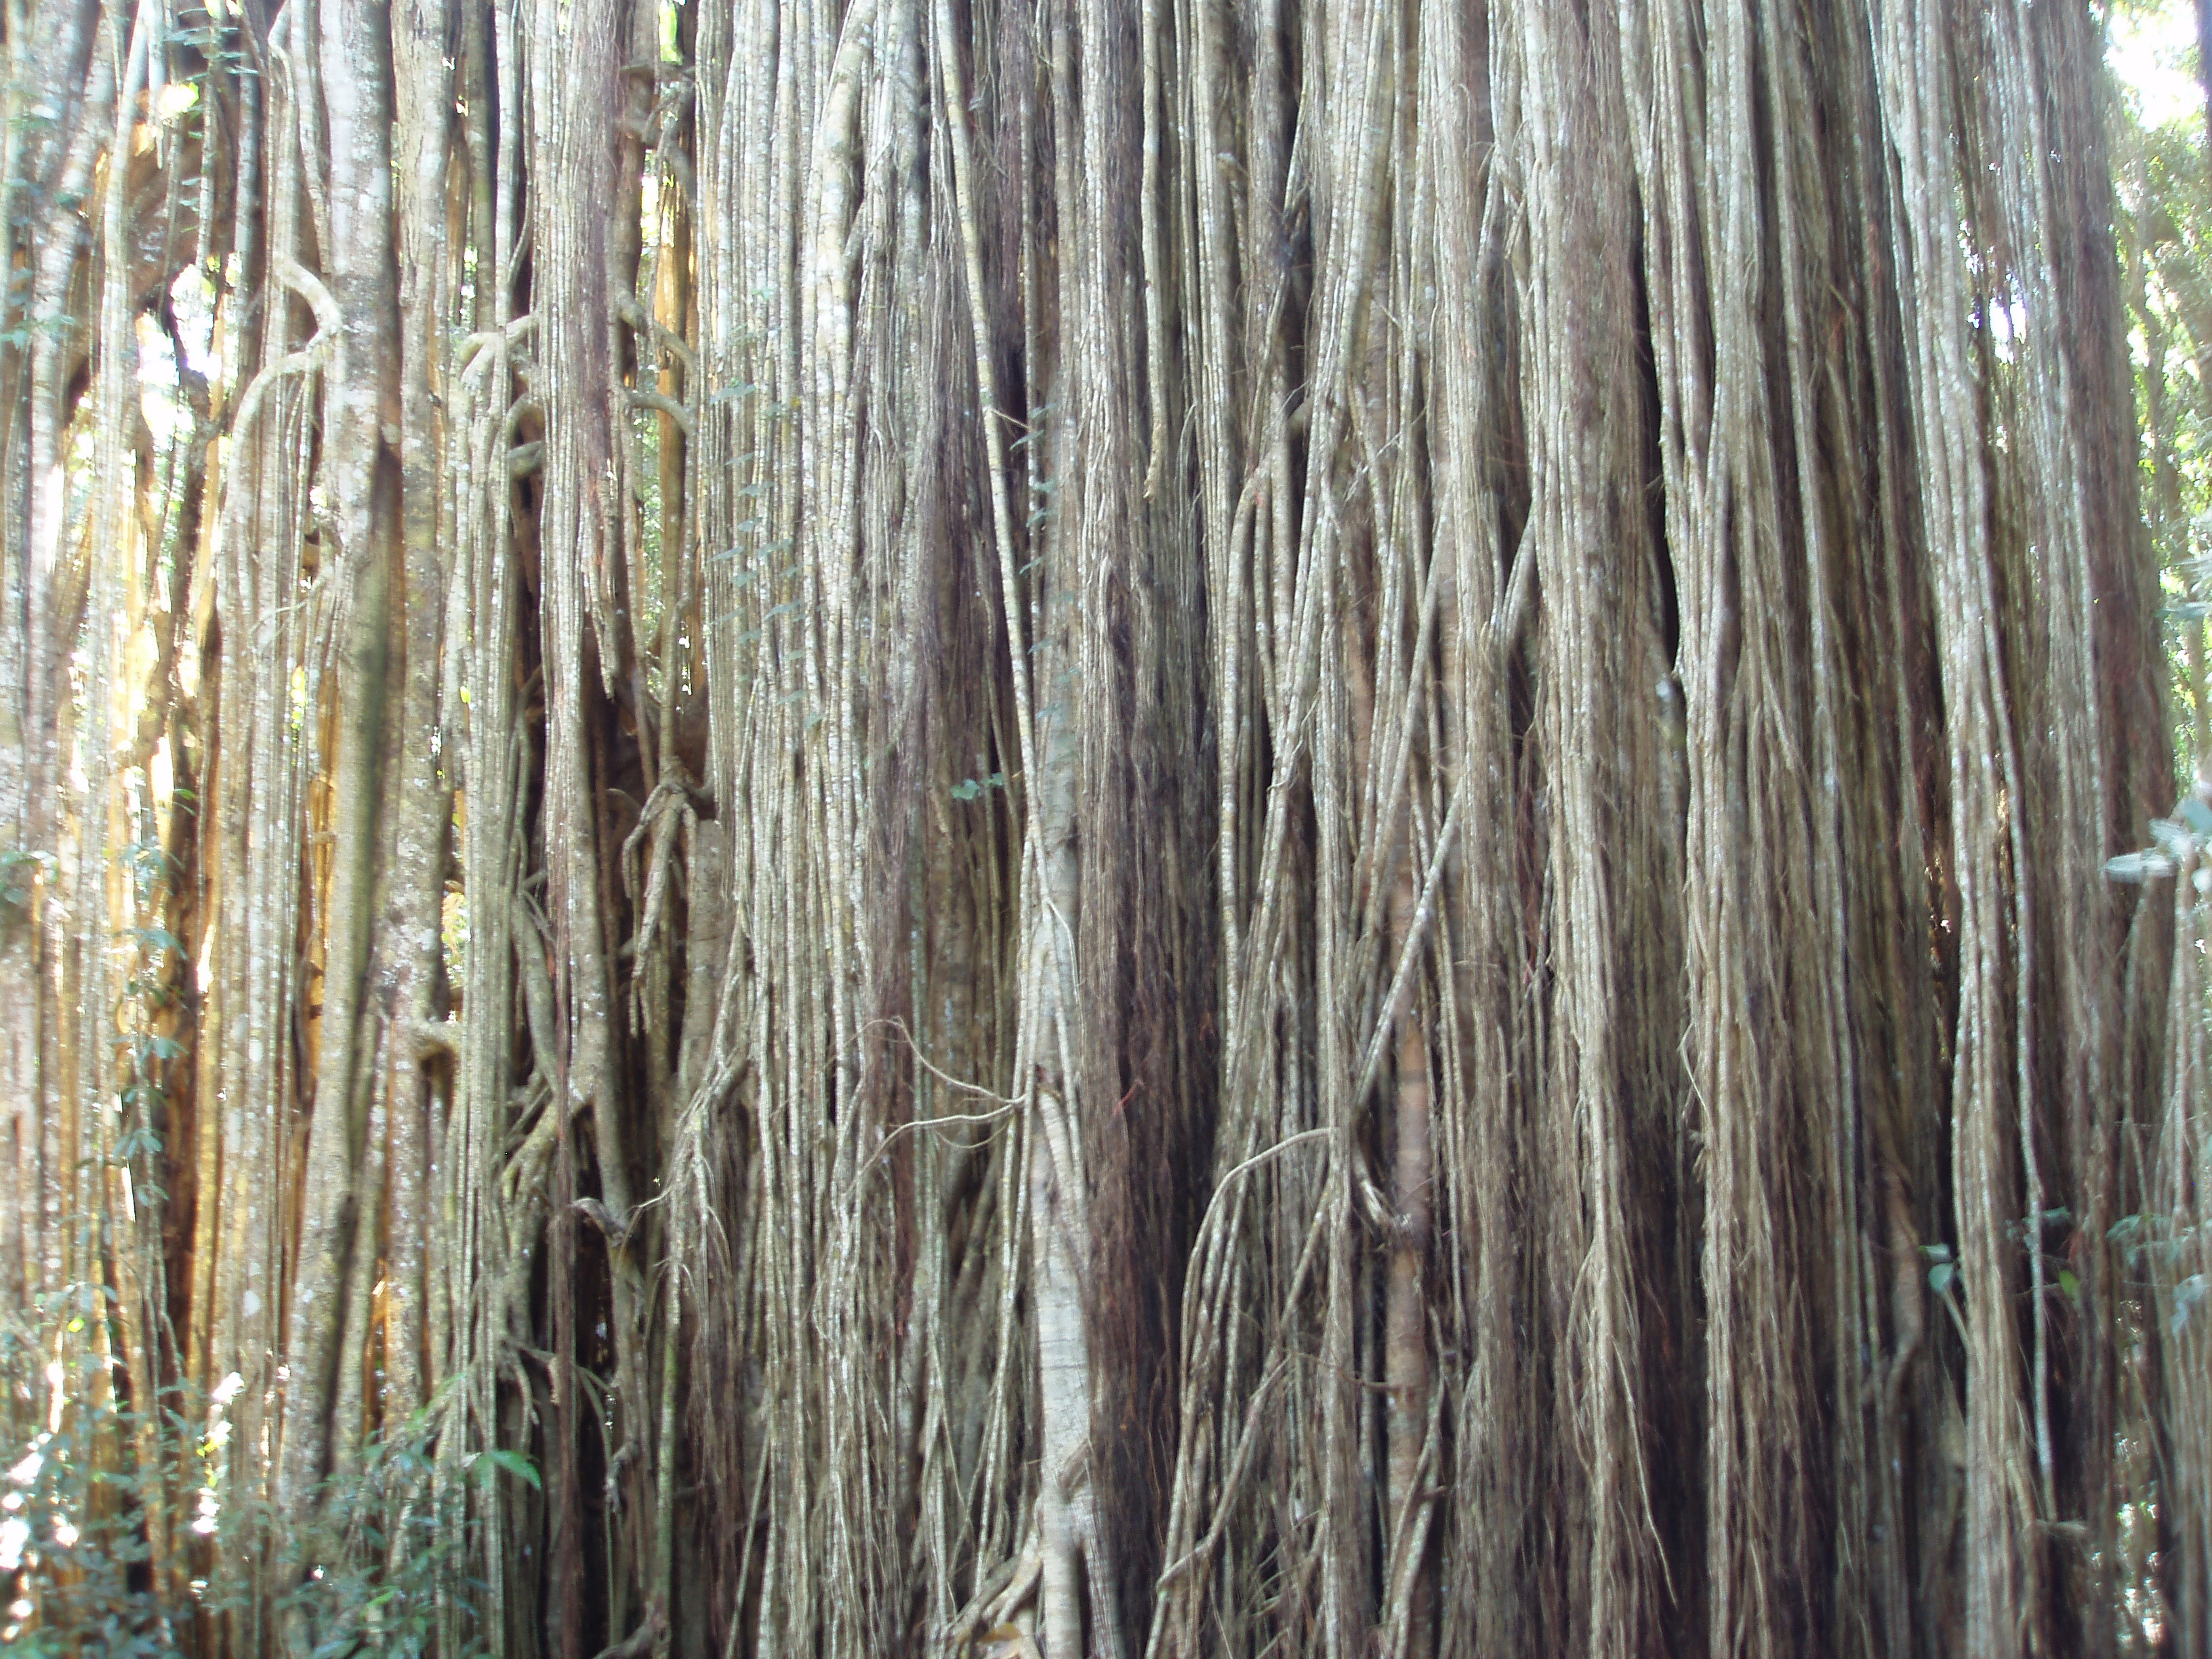 blurred linear texture of fig tree aerial roots